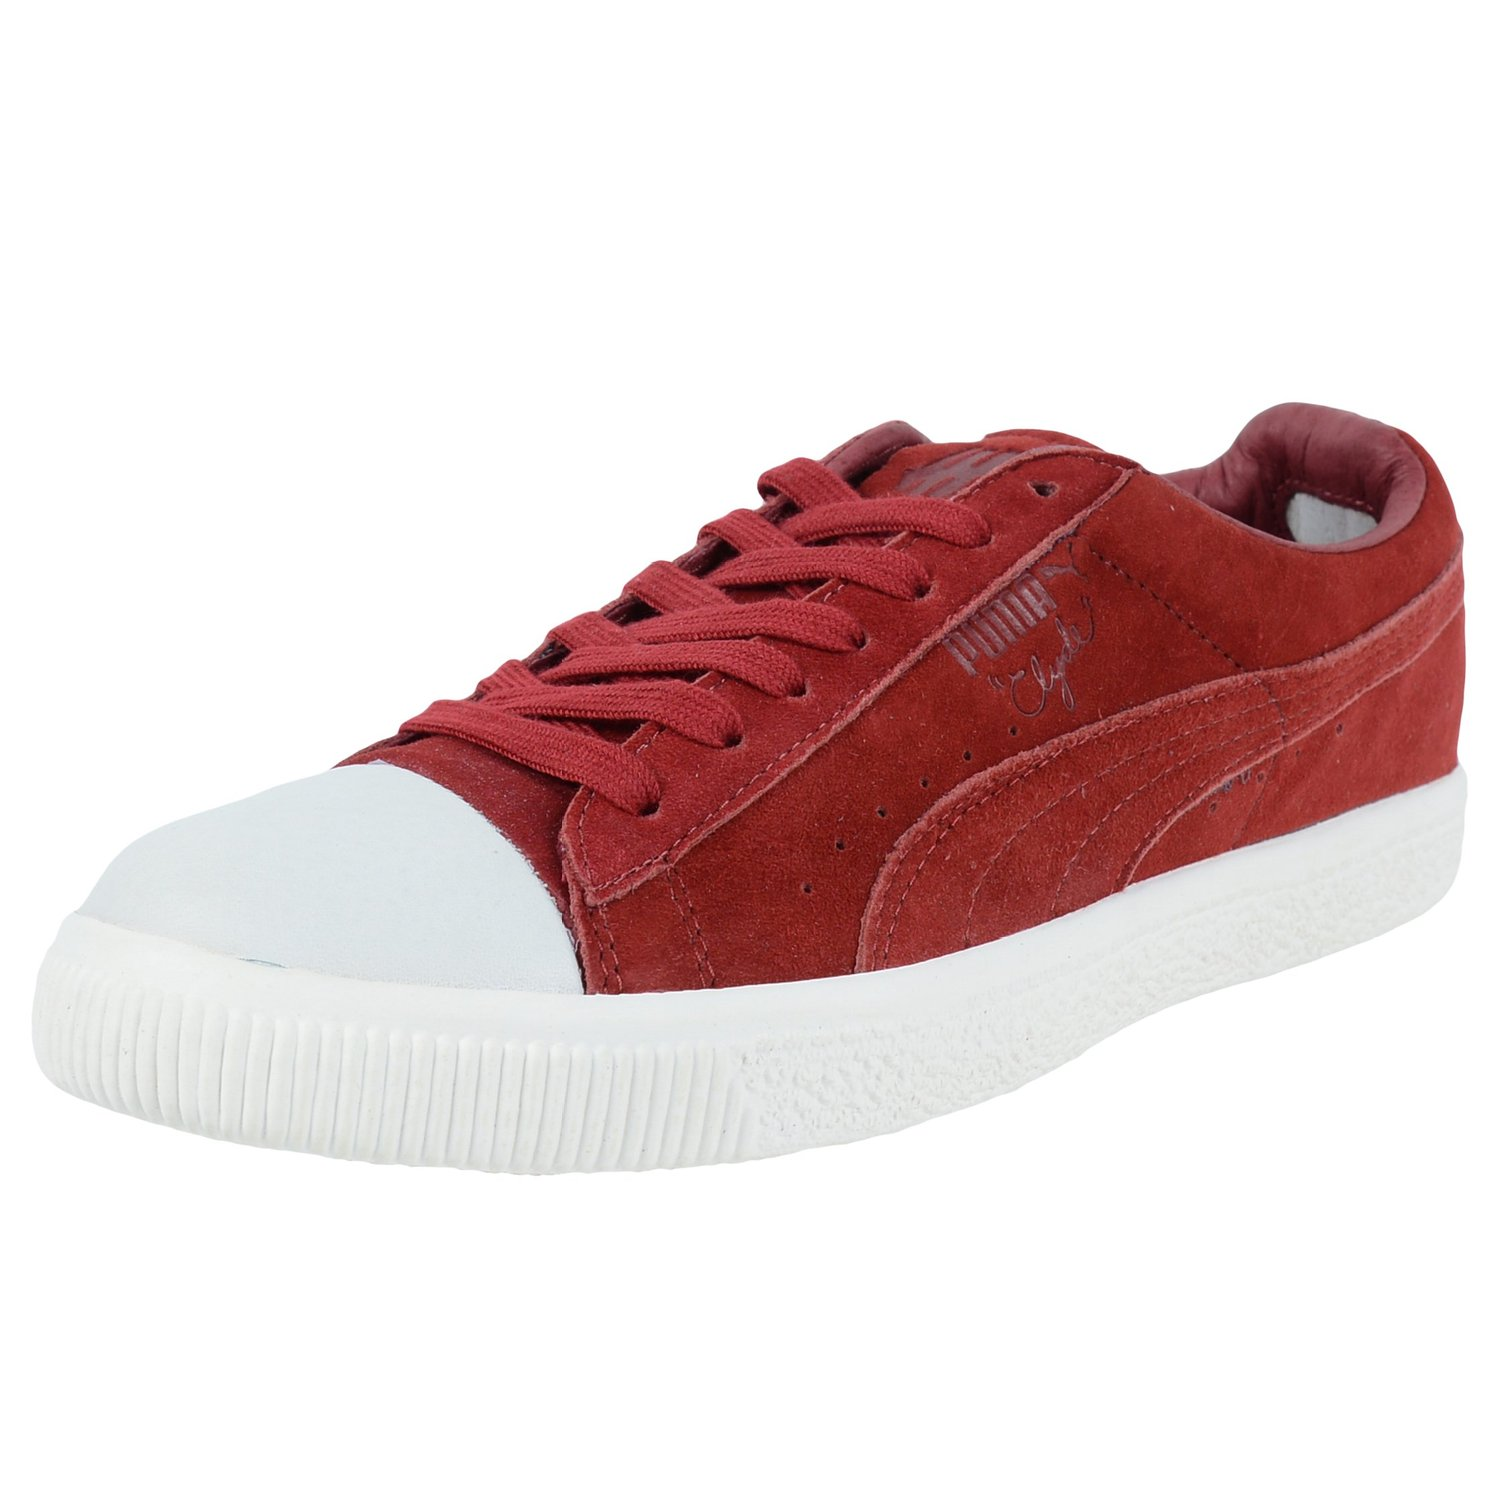 b41adff67869 PUMA CLYDE X UNDEFEATED COVERBLOCK SNEAKERS RIO RED WHISPER WHITE 352778 01